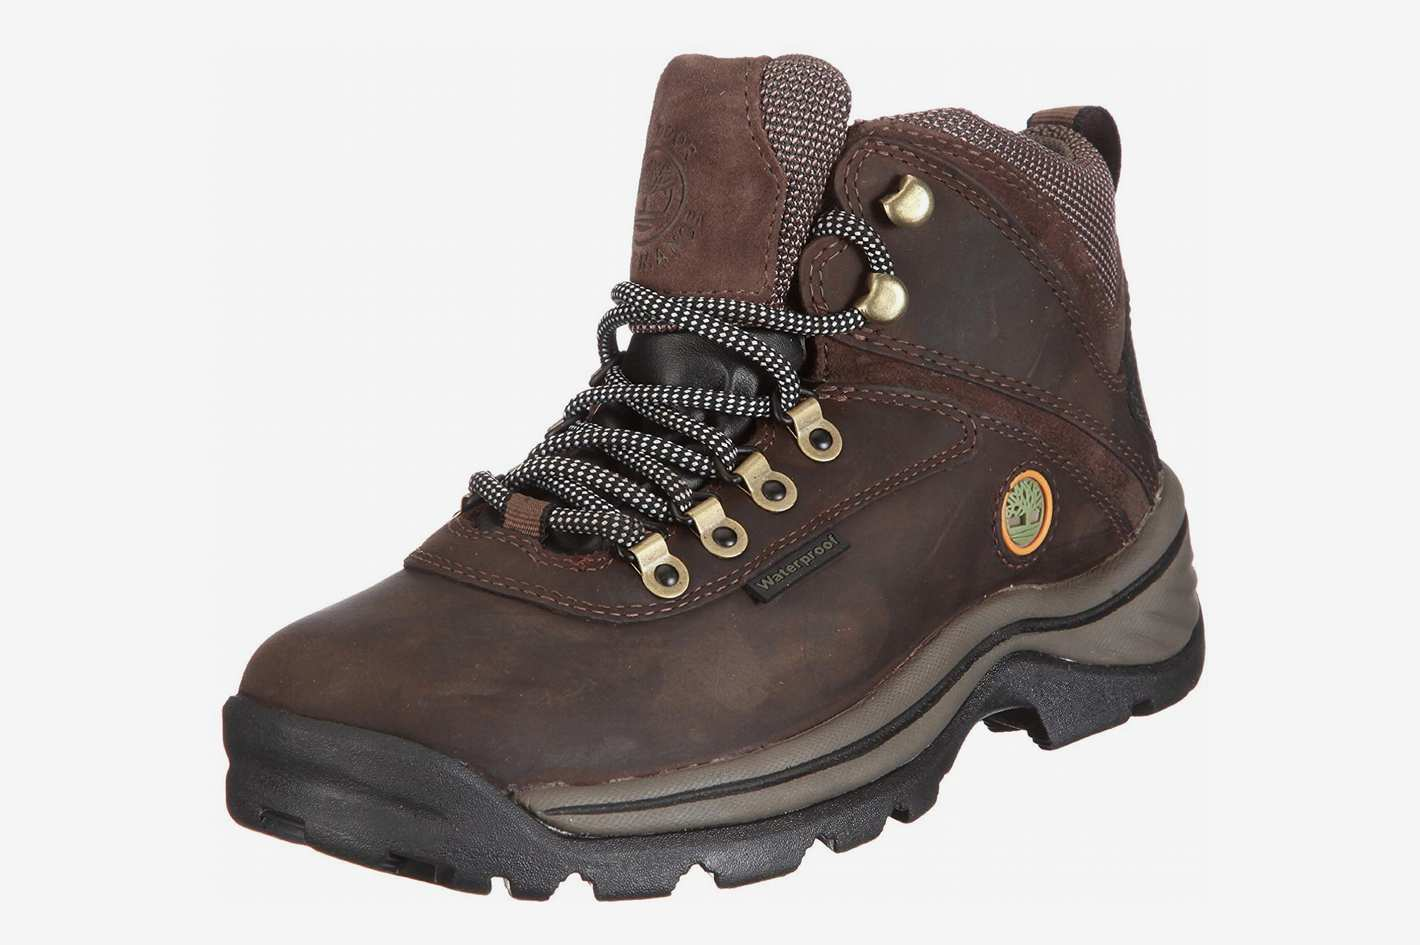 Best all-weather hiking boots